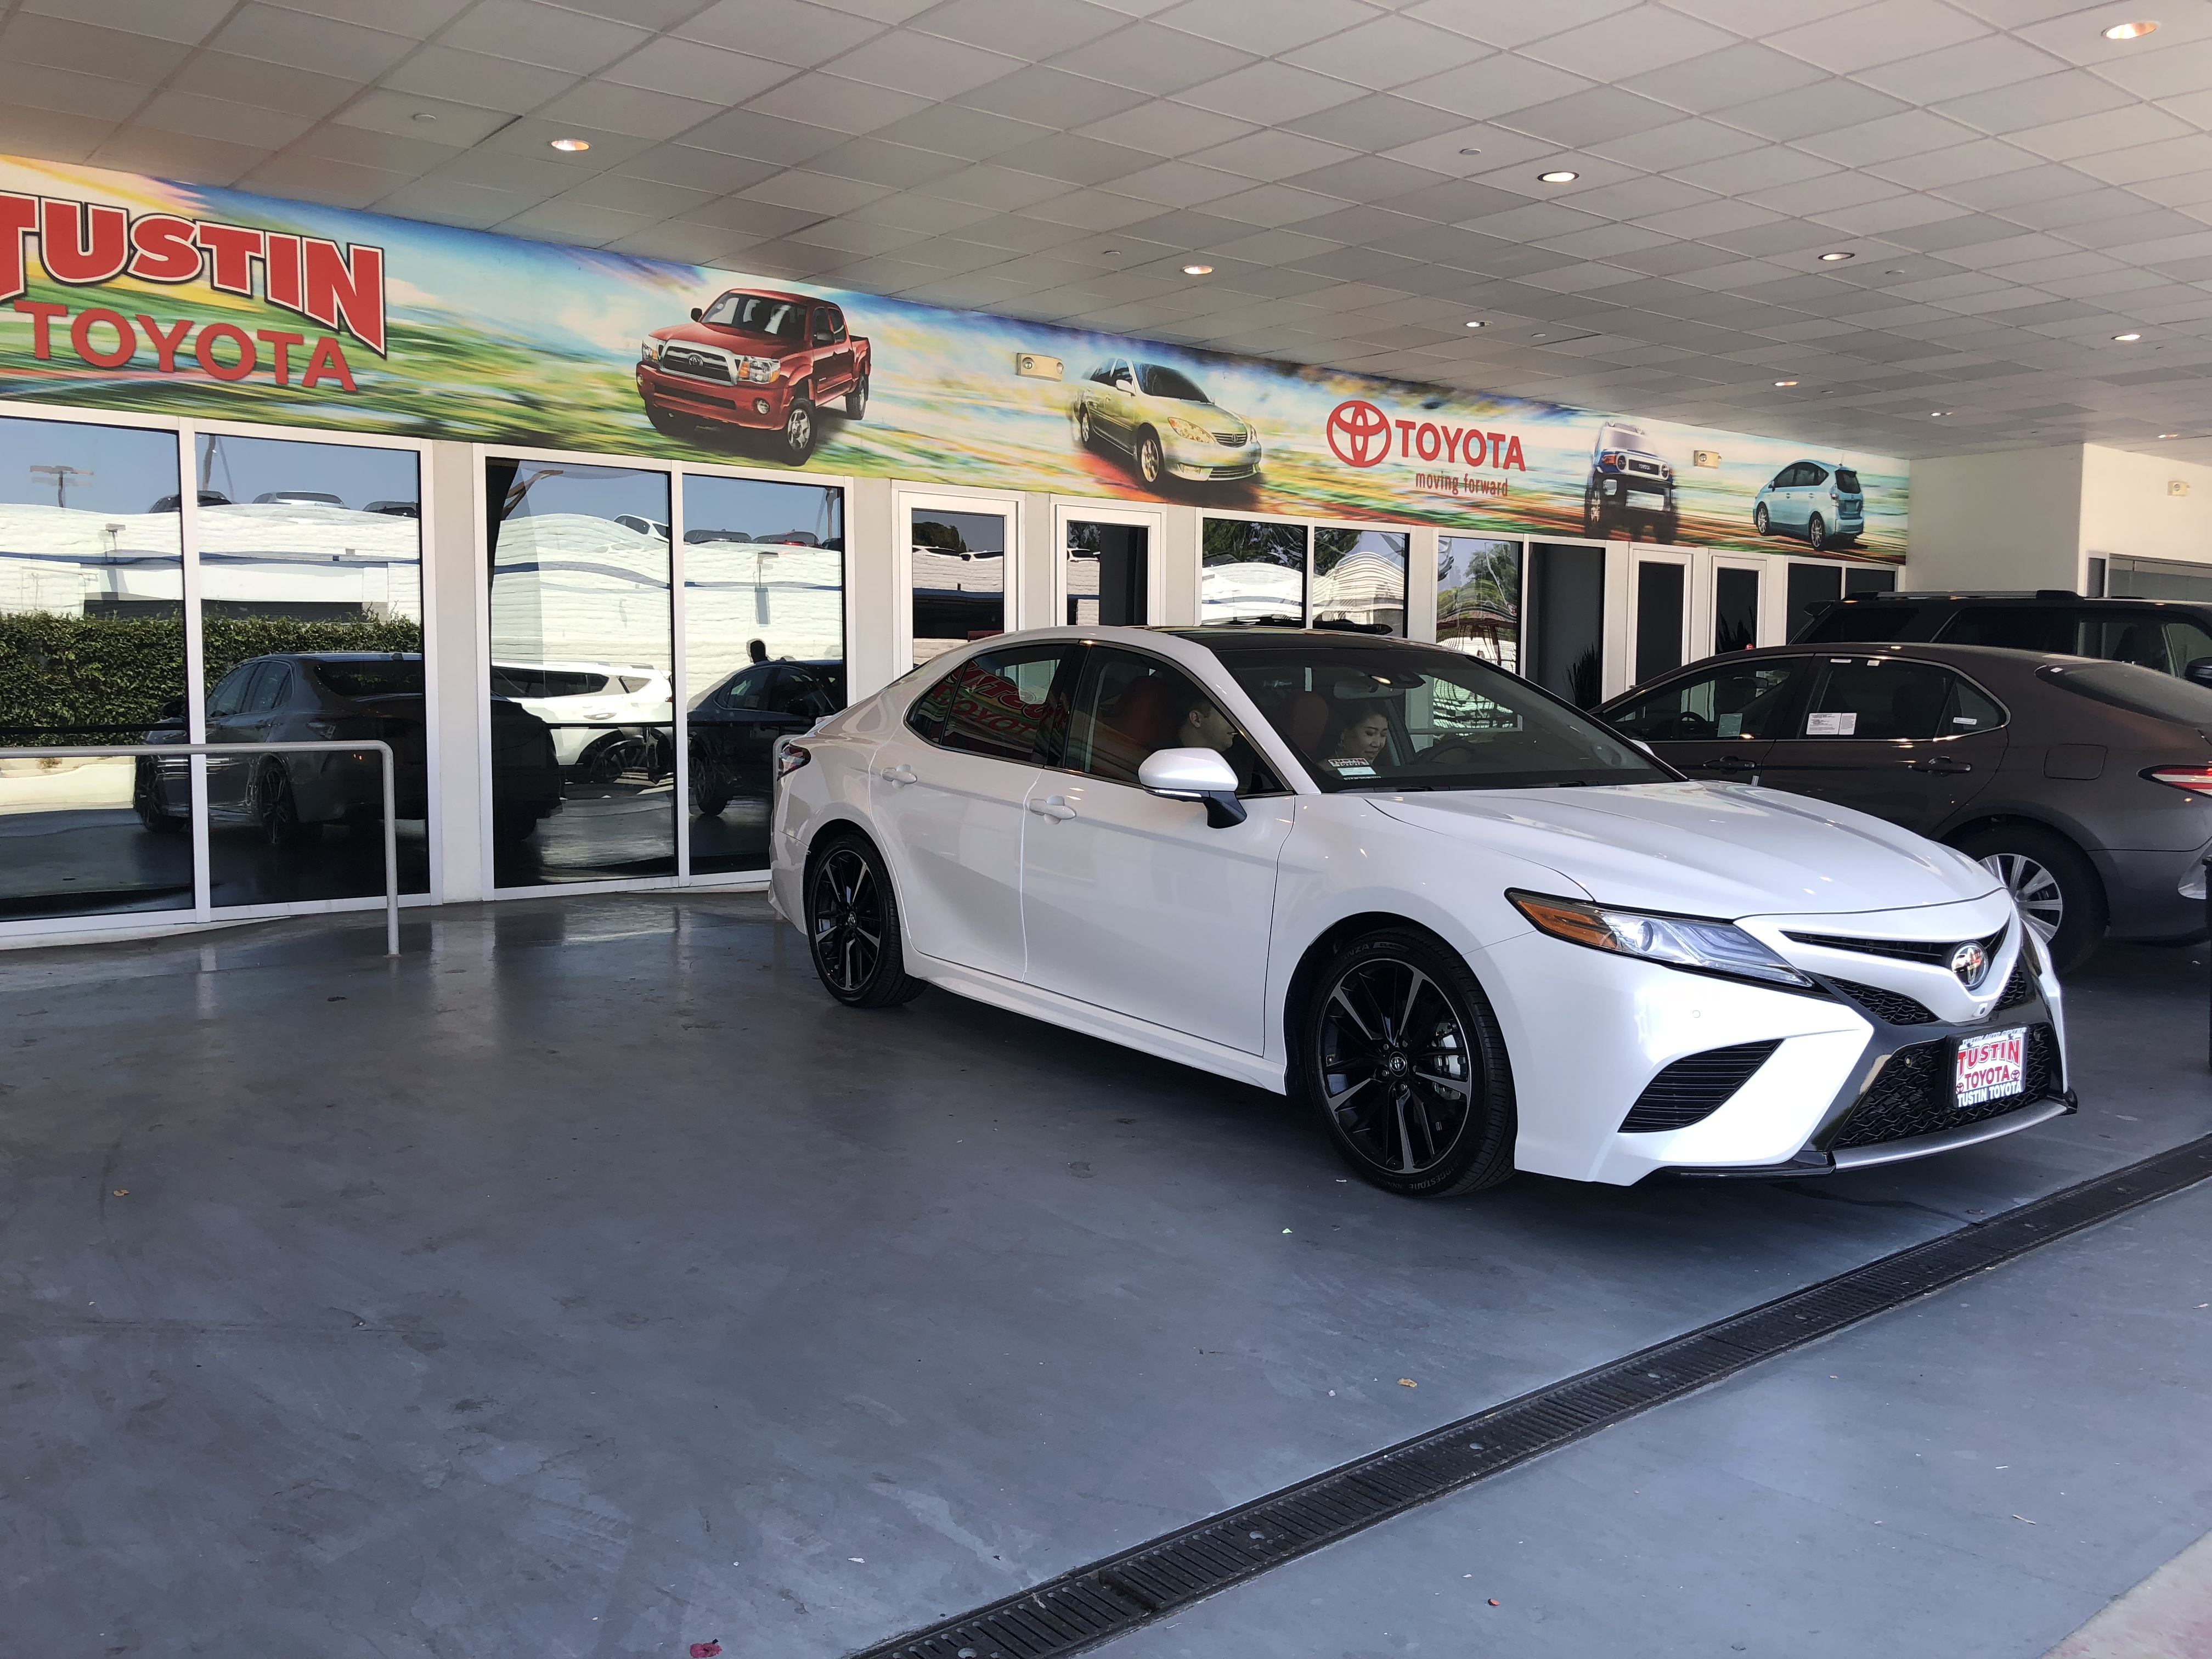 Tustin toyota service department phone number